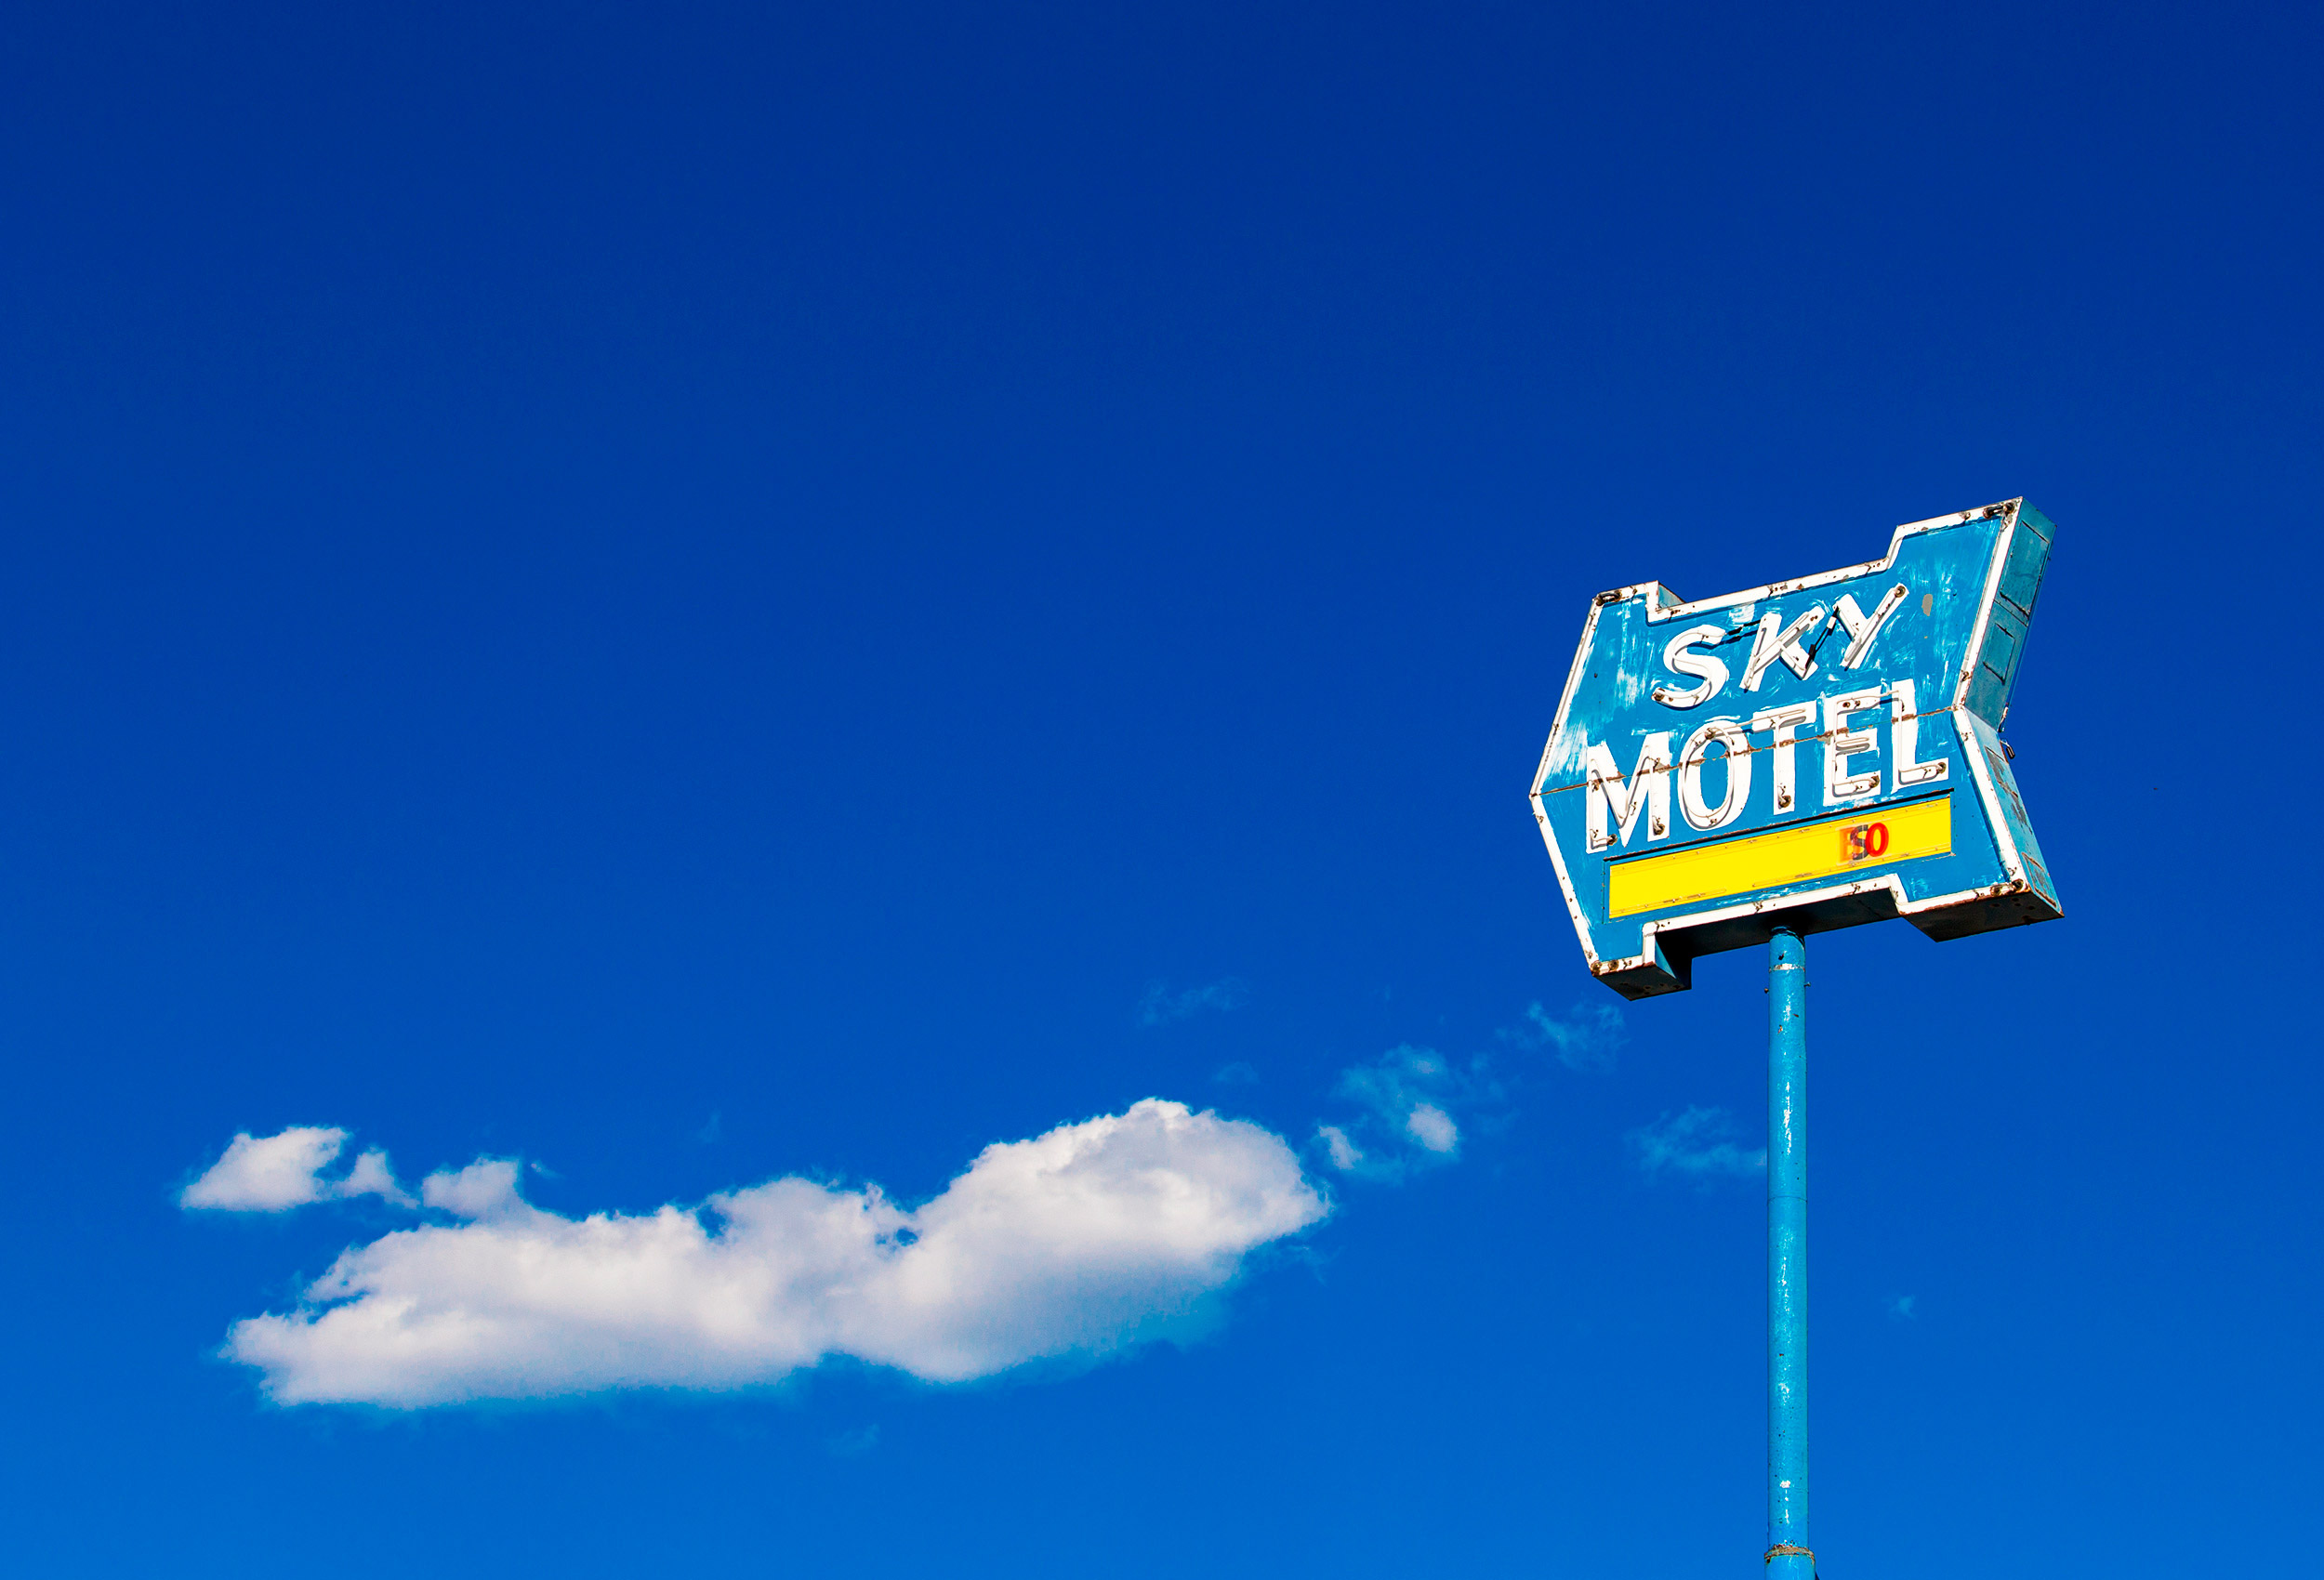 a motel sign against the deep blue sky by an award winning american travel photographer